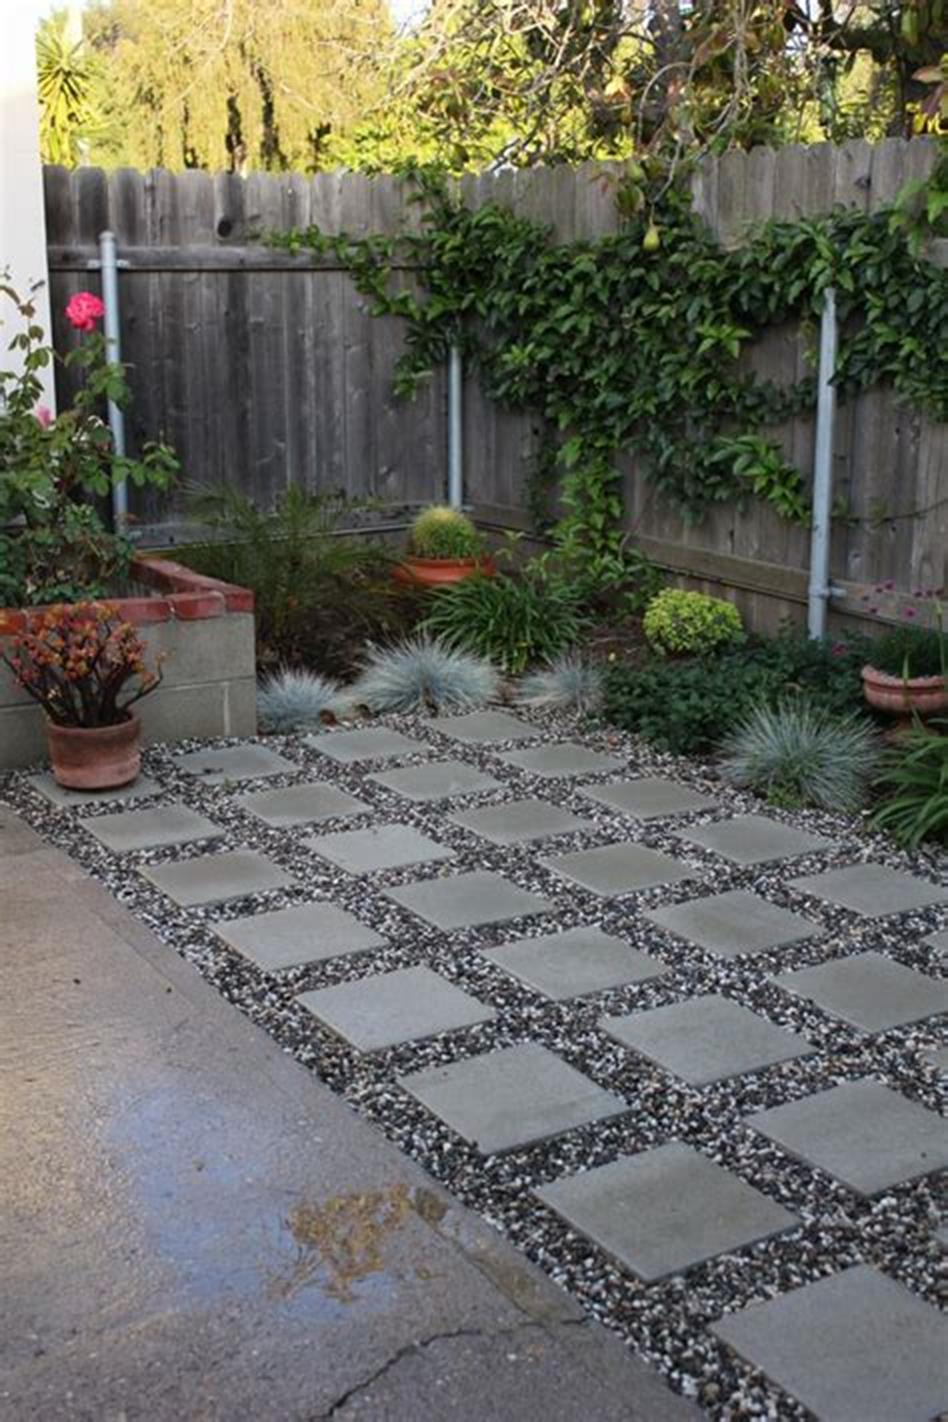 Amazing 45 Most Popular Backyard Paver Patio Design Ideas 2019 25 pertaining to 11 Smart Ideas How to Make Backyard Paving Ideas